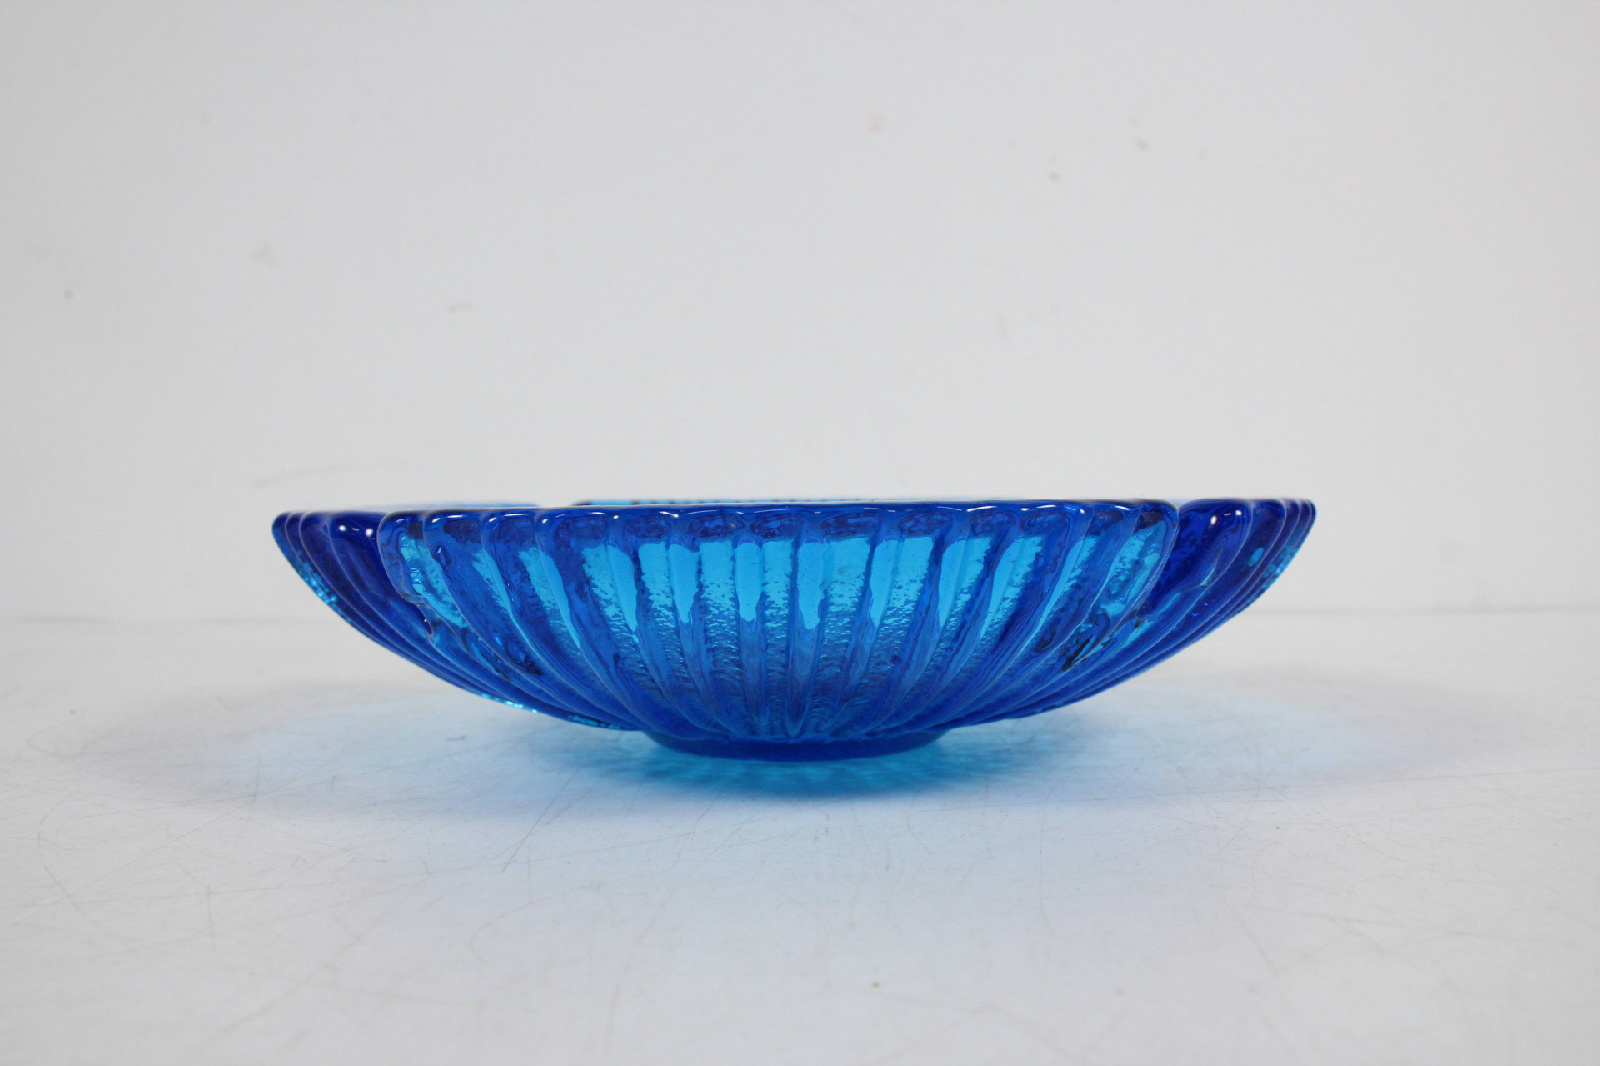 Best Art Glass Studio Cobalt Blue Artisan Home Decor Bowl Ebay This Month